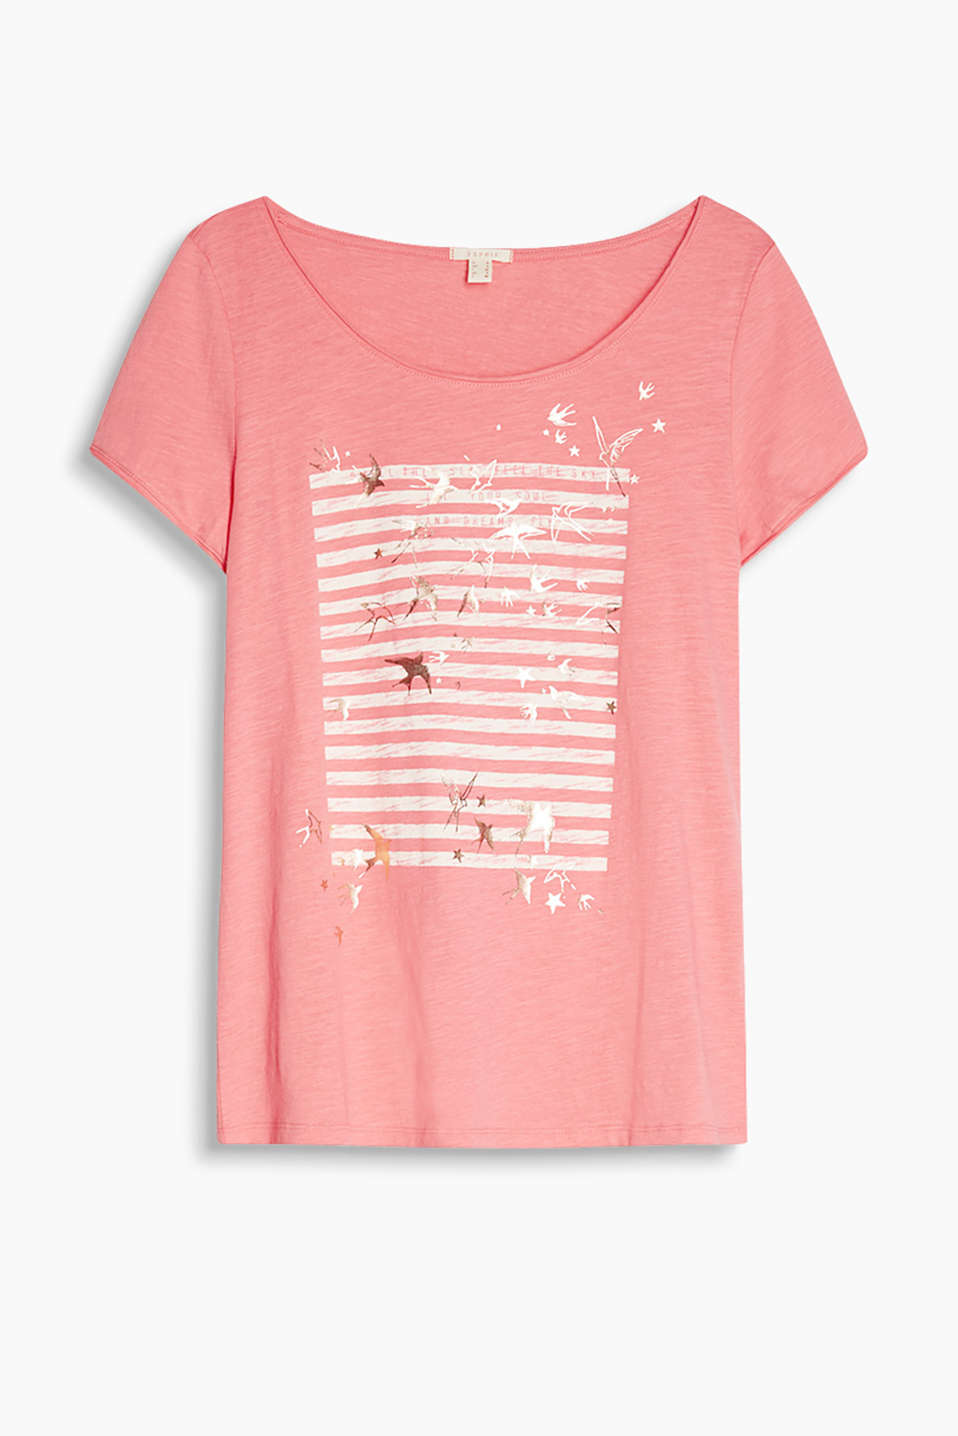 Airy slub jersey T-shirt with a decorative flag print